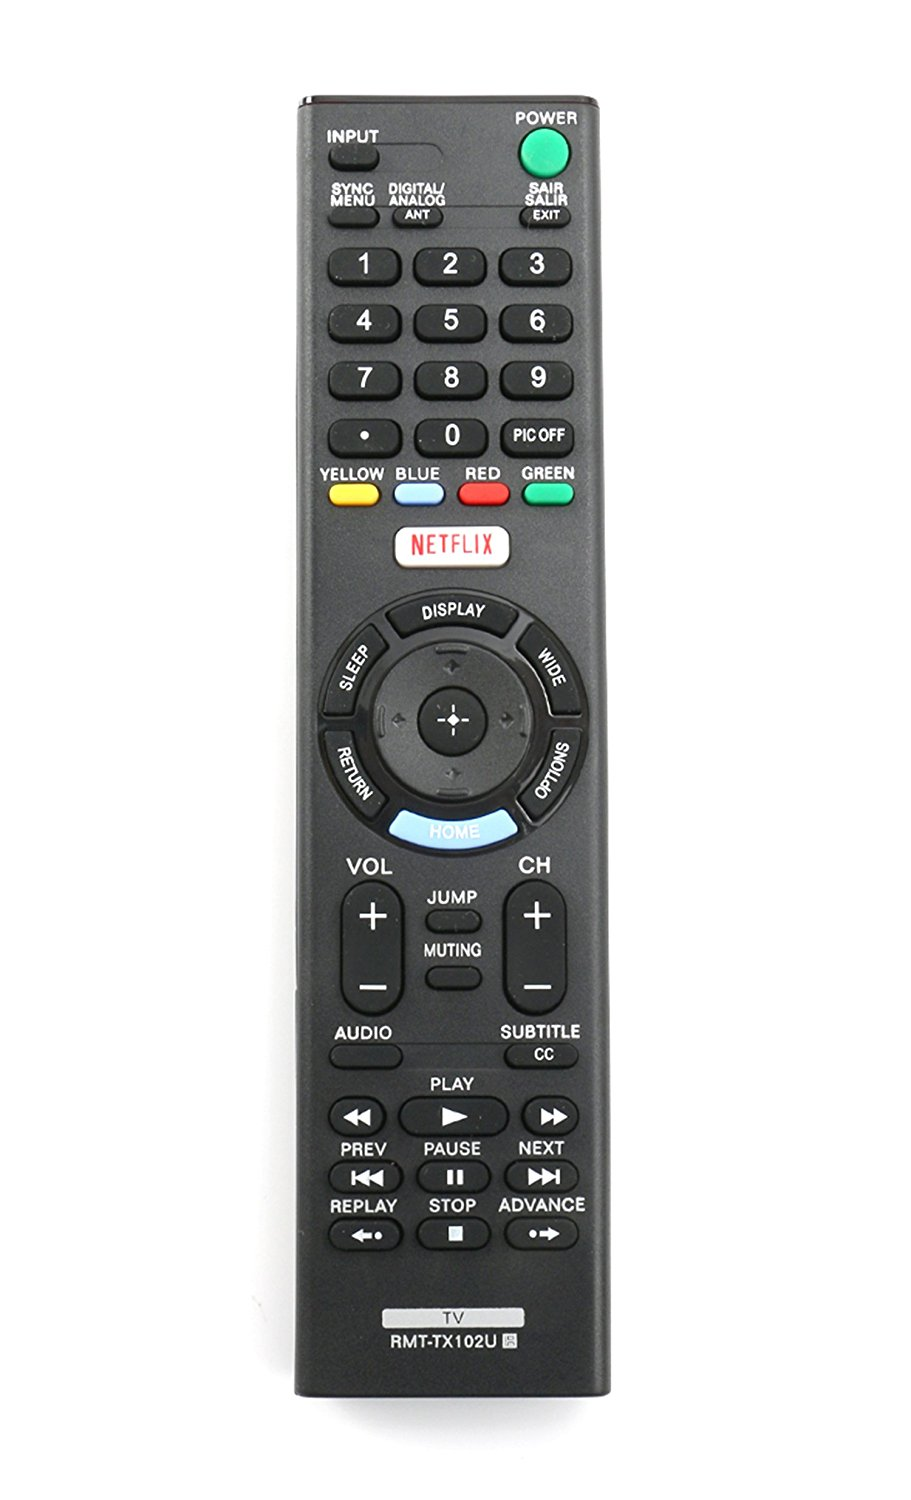 New RMT-TX102U Replaced Remote fit for Sony TV KDL-32R500C KDL-40R510C KDL-40R530C KDL-40R550C KDL-48R510C KDL-48R530C KDL-48R550C 149298011 KDL40R550C KDL48R510C KDL48R530C